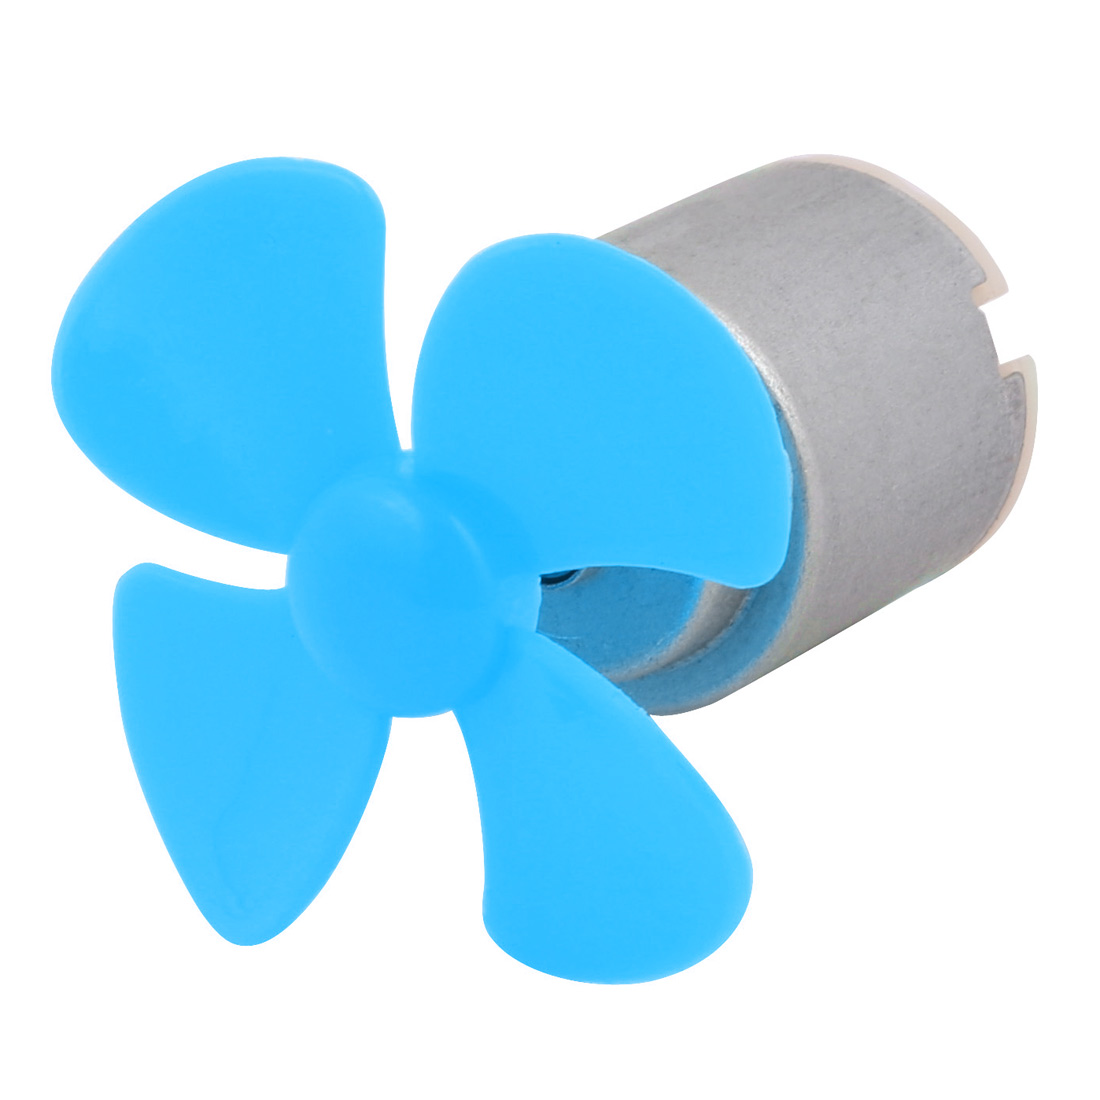 DC 5V 9200RPM Large Torque Motor 4-Vane 40mm Dia Propeller Blue for RC Model